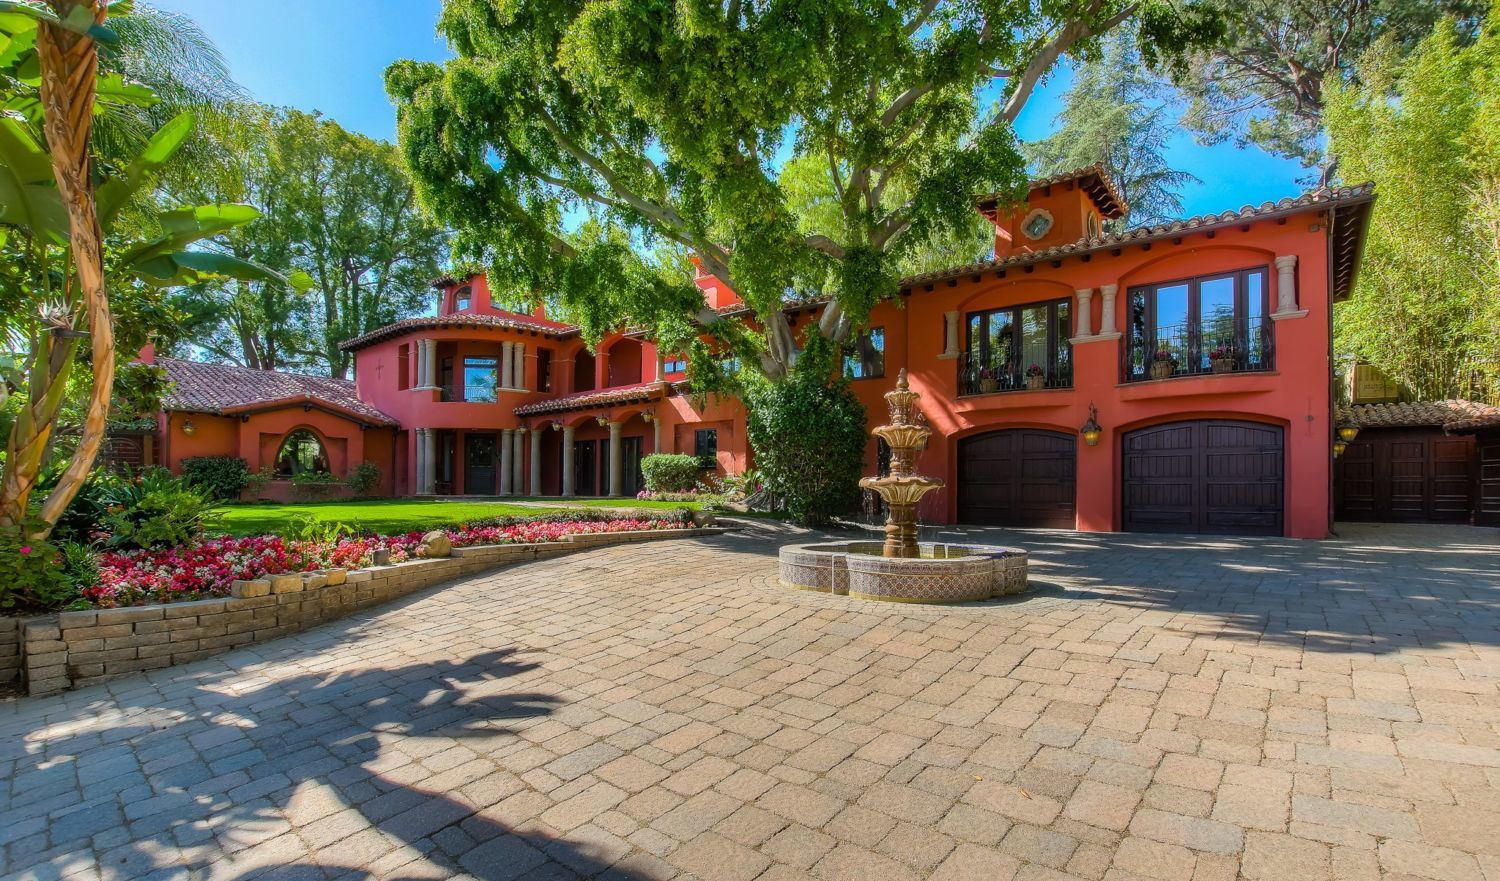 Celebrity Homes | California Home on michael jackson designs, flowers designs, home decor designs, martha stewart designs, photography designs, home improvement designs, beyonce designs, interiors designs, health designs, foreclosure designs, tips designs, real estate designs, design designs, kanye west designs, mansion designs, fashion designs, victoria beckham designs,